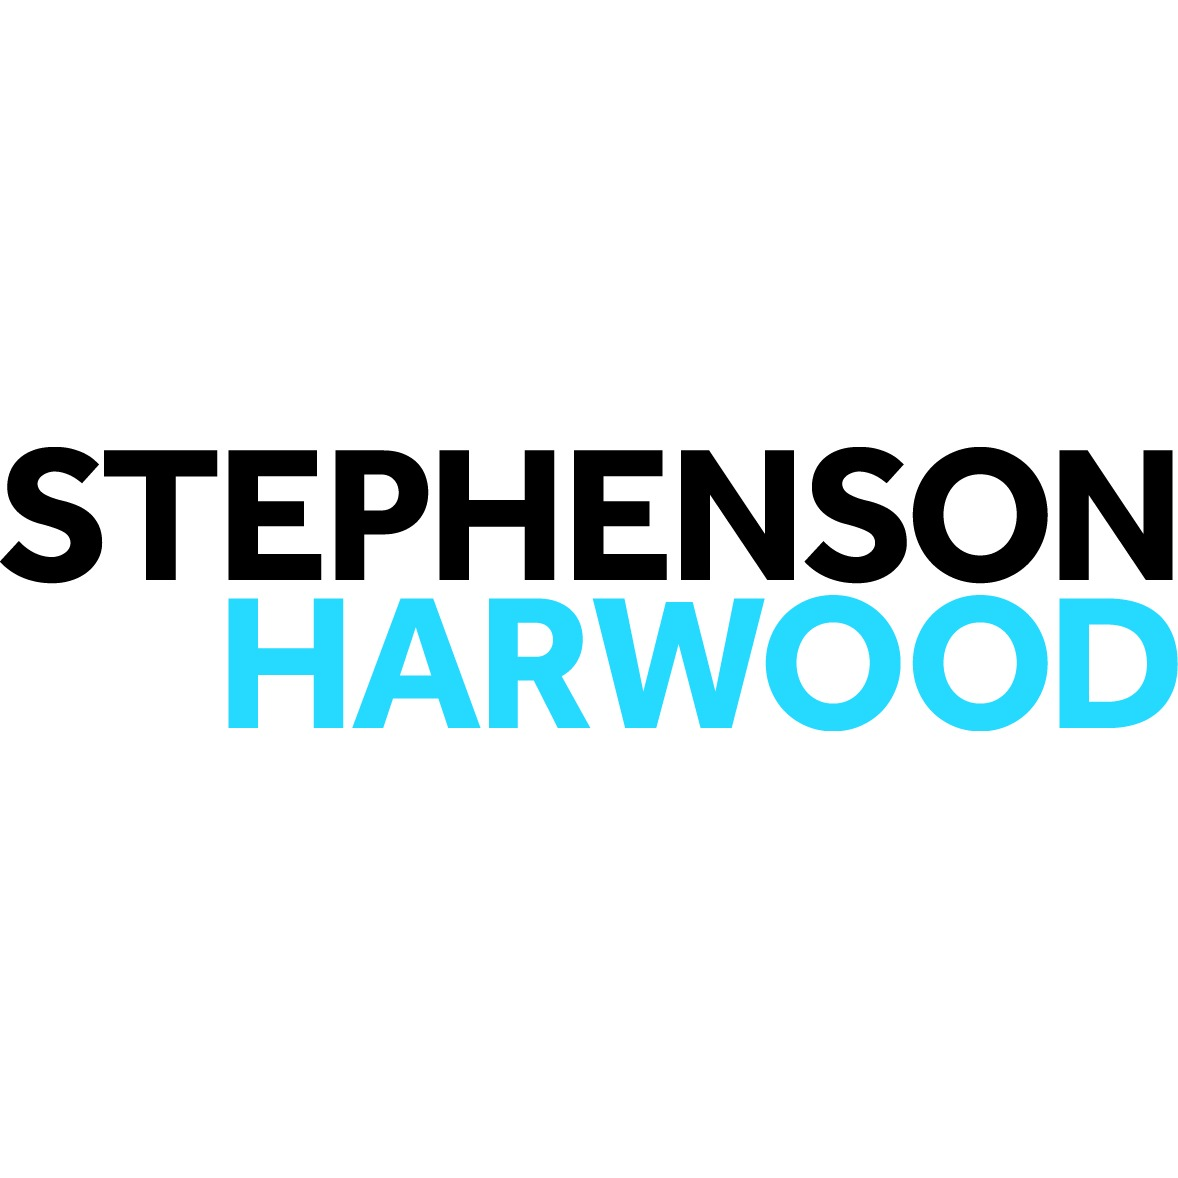 the Stephenson Harwood logo.